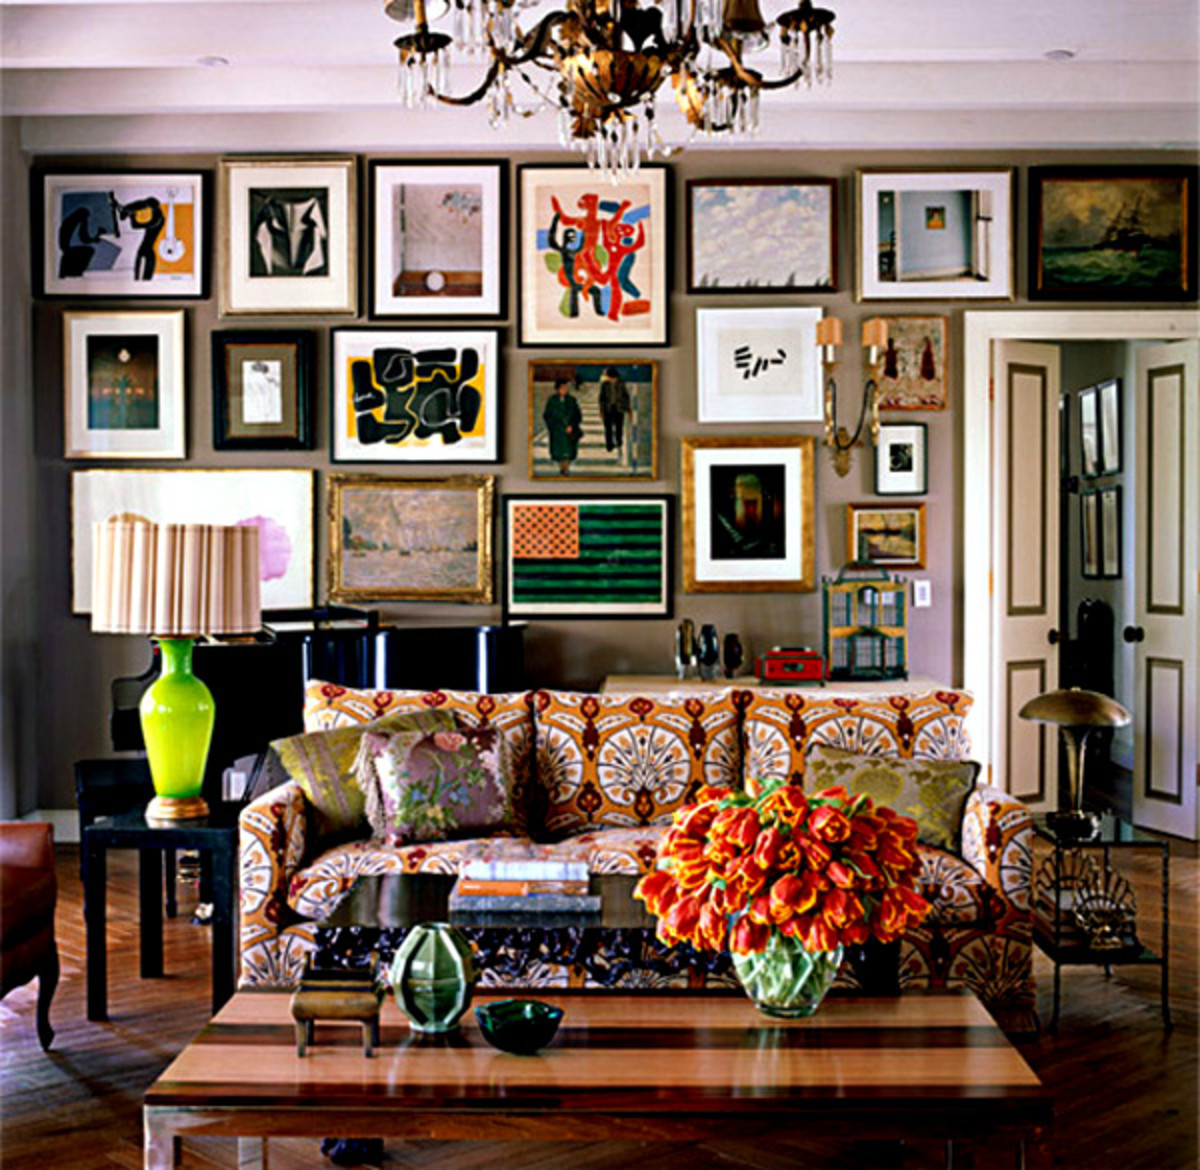 Take the time to choose a wall color that works with the collection of artwork or photos.